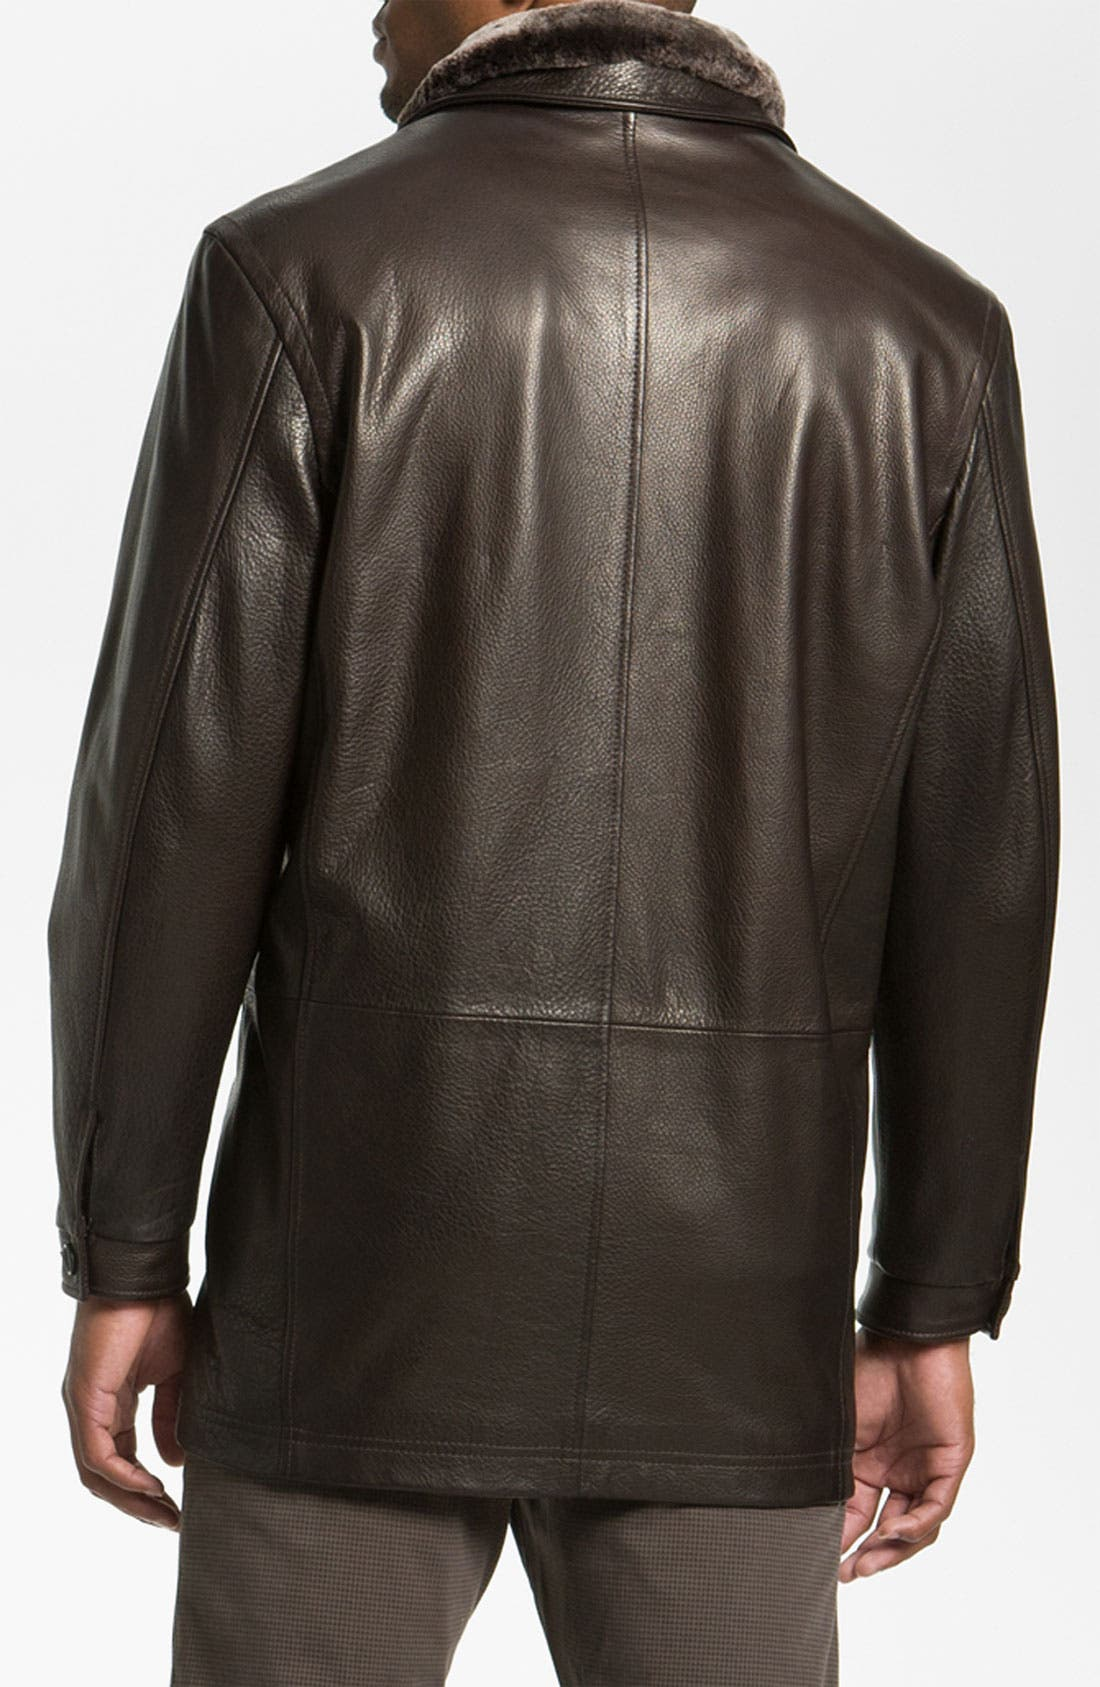 REMY LEATHER,                             Calfskin Leather Jacket,                             Alternate thumbnail 5, color,                             205